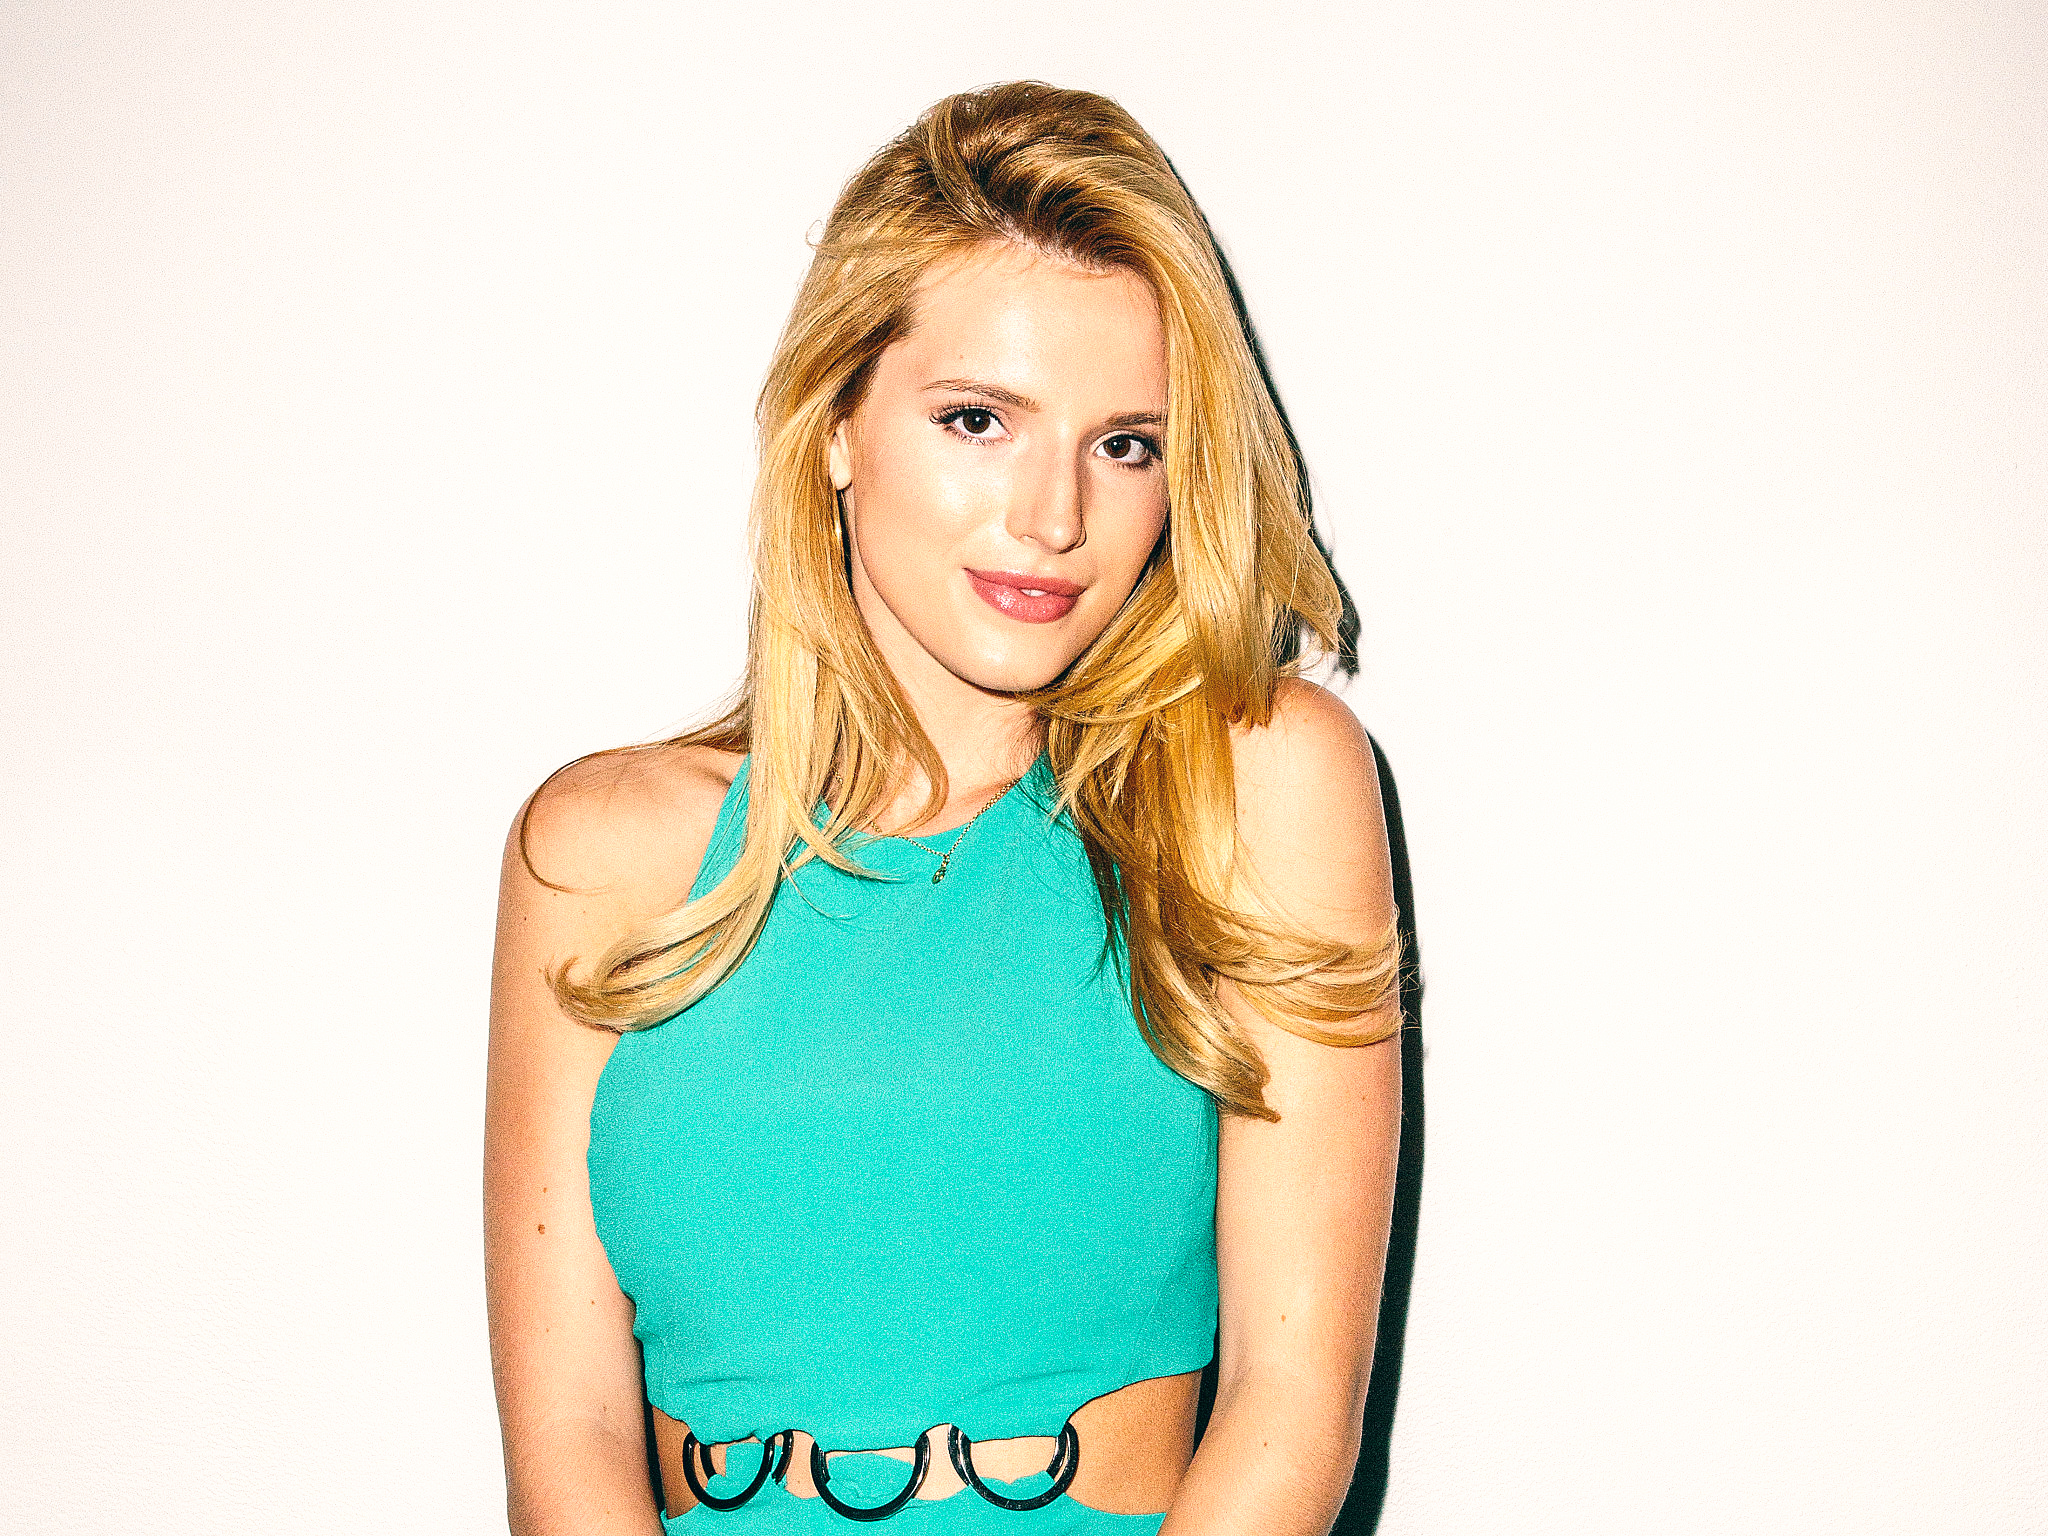 Bella thorne wallpapers pictures images - Bella thorne wallpaper ...